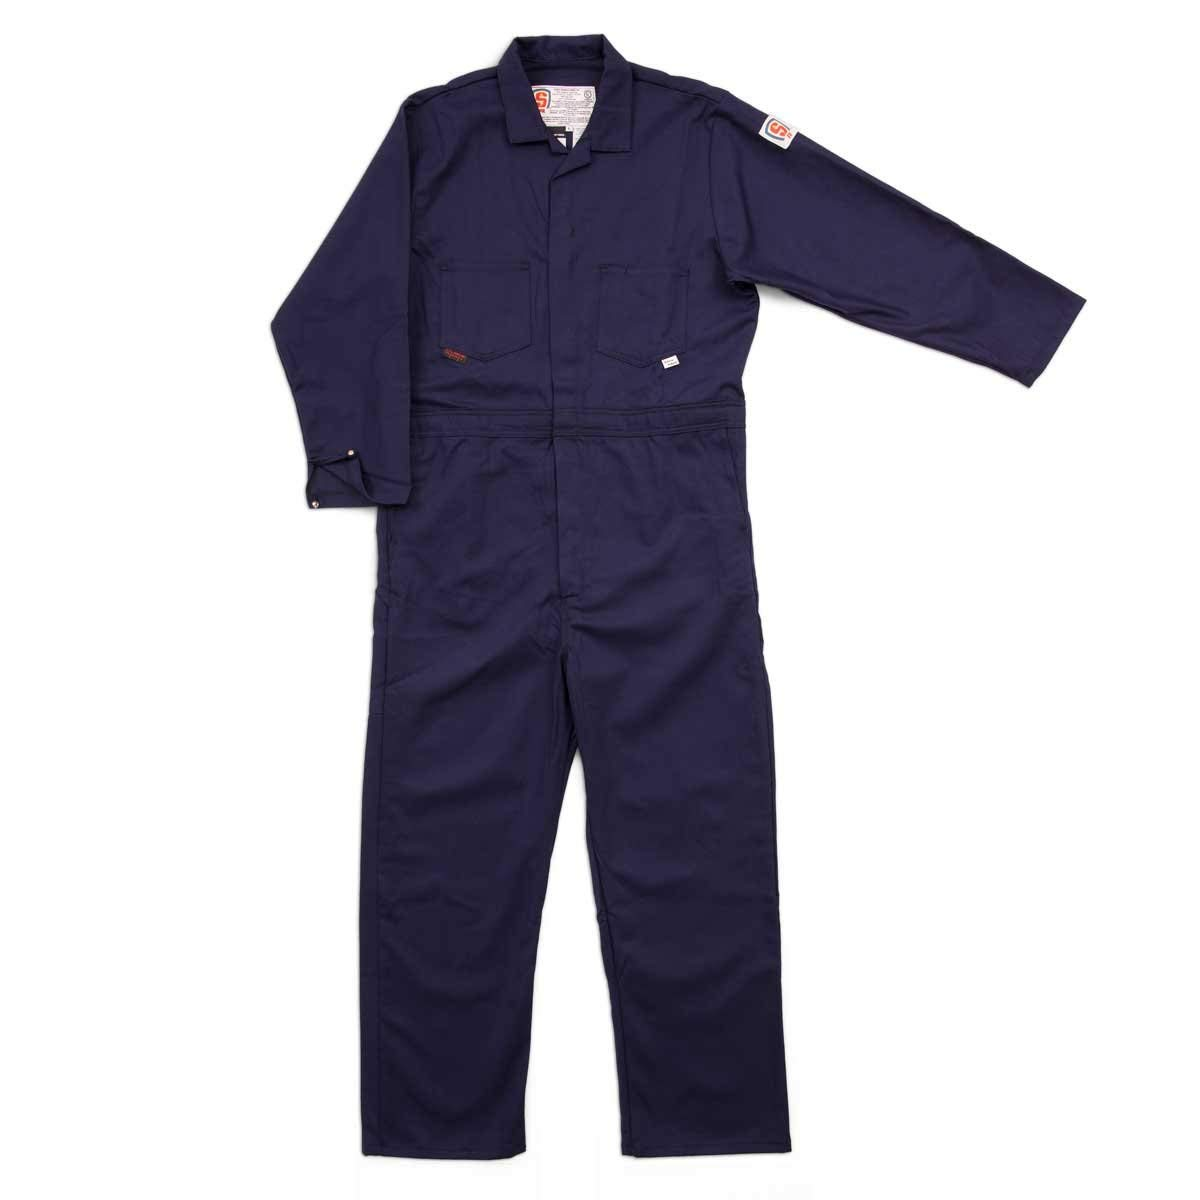 c2930a702c89 Get Quotations · Stanco Safety Products X-Large Navy Blue 7.5 oz  Lightweight Cotton Flame Resistant Full Featured